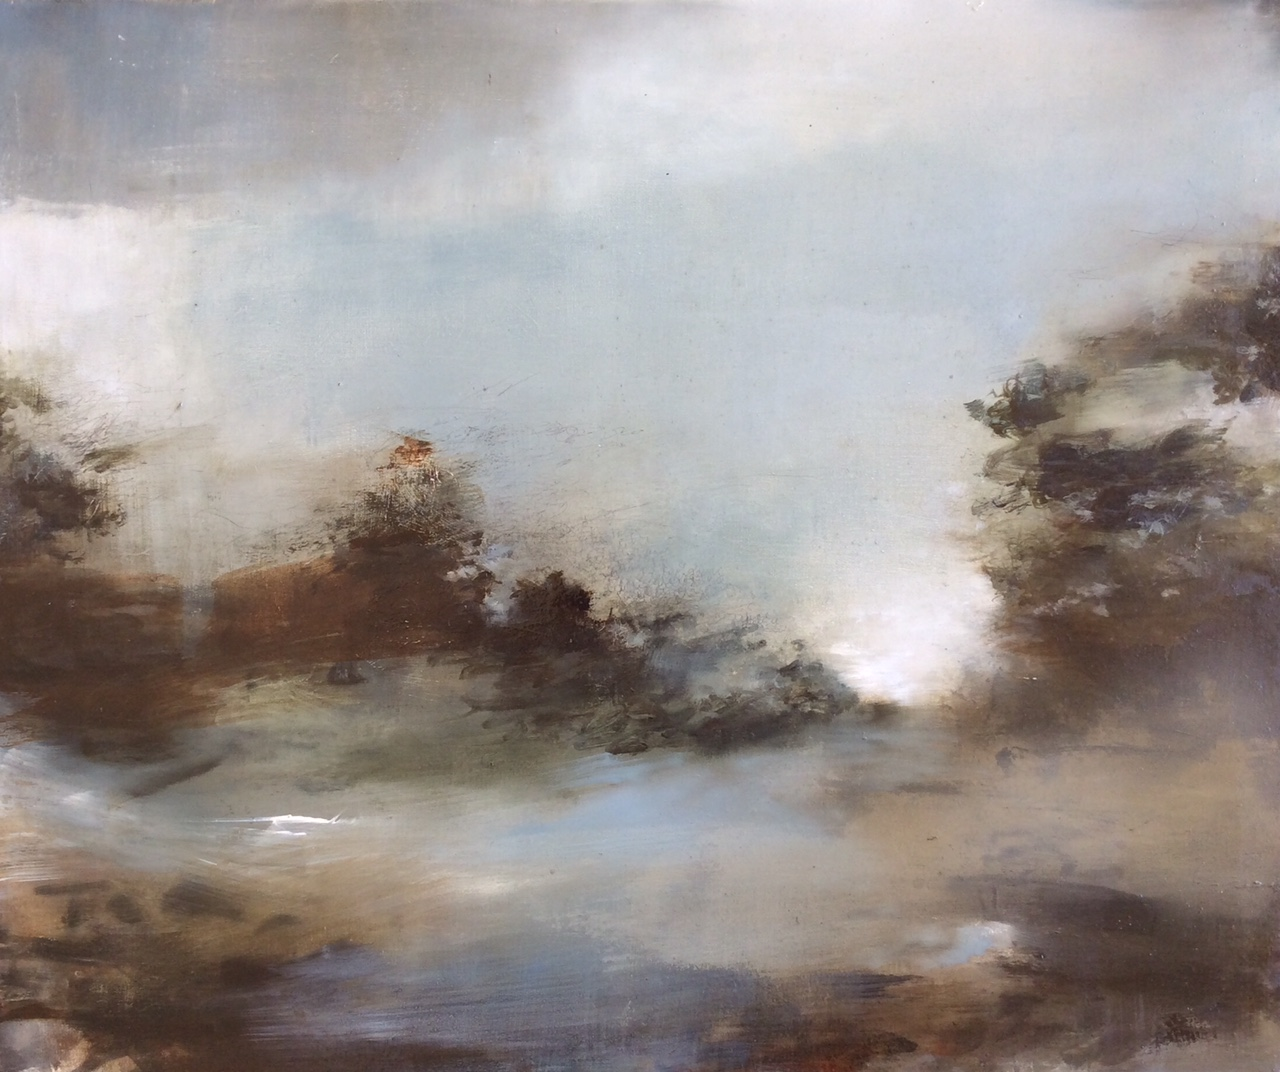 Artist: Linda Felcey  Title: Spring Deluge  Size: 50 x 60 cm  Medium: Oil on linen  Price: £1250